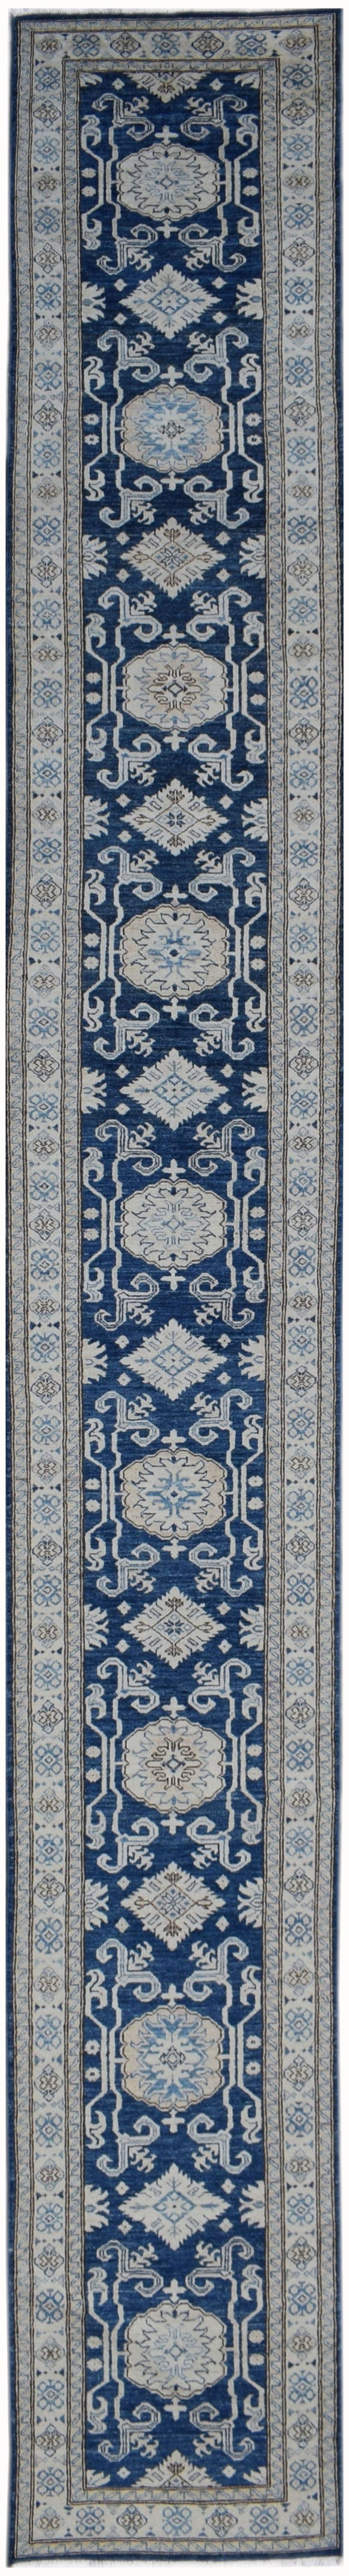 Handmade Sultan Collection Hallway Runner | 615 x 78 cm | 20'2